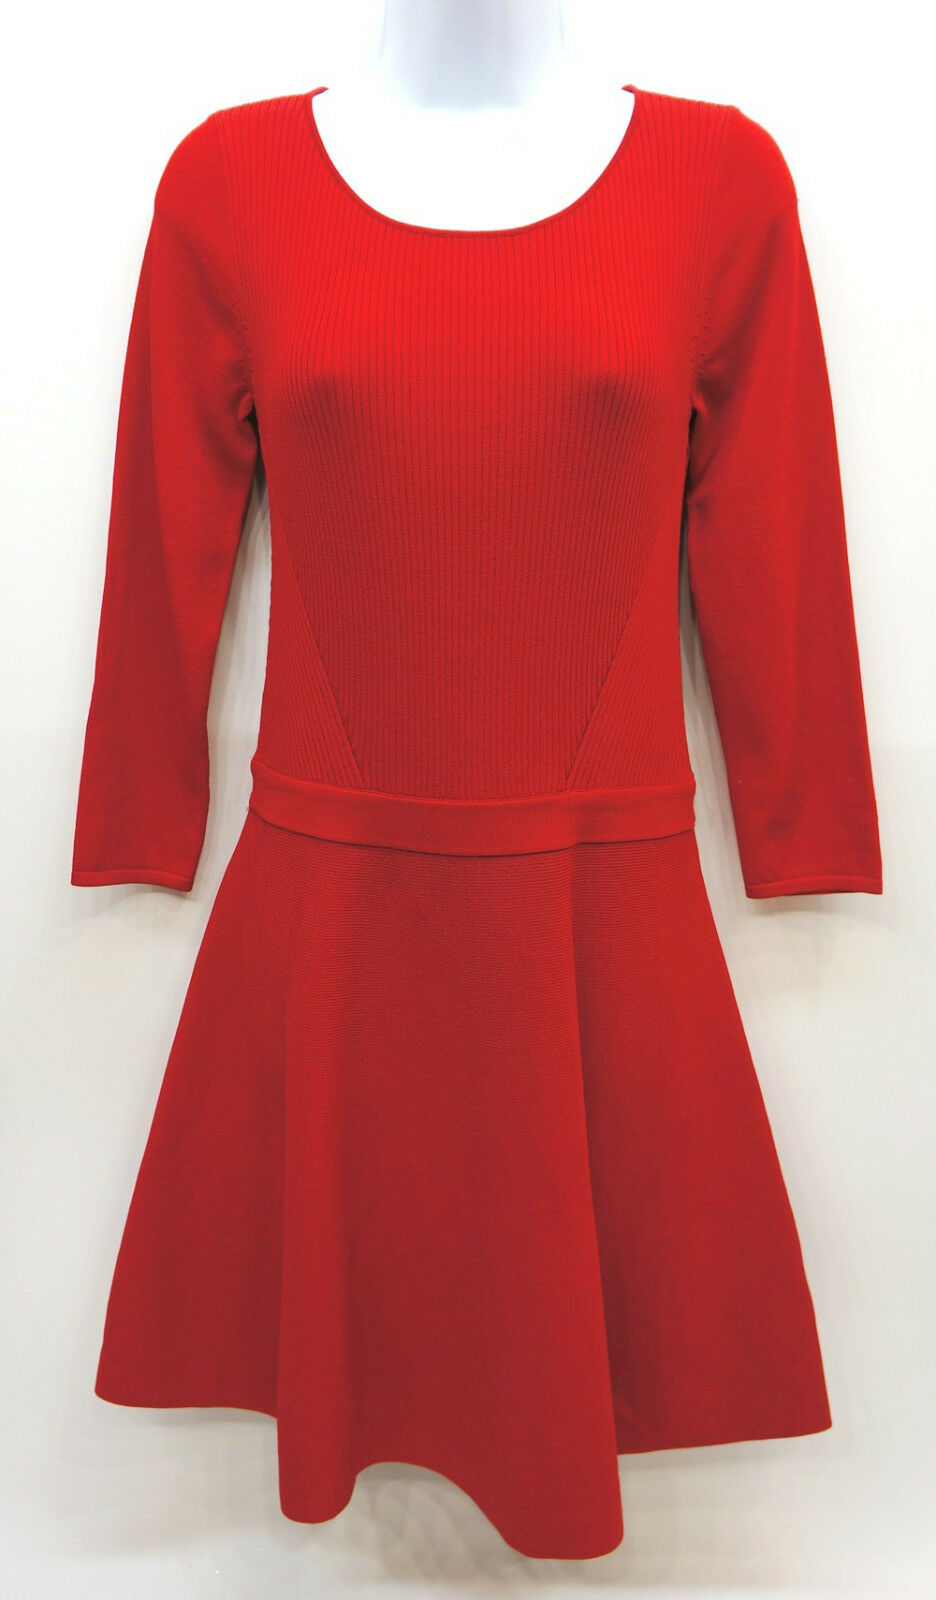 Lauren Ralph Lauren Red A-Line Flare Sweater Dress Women's Medium